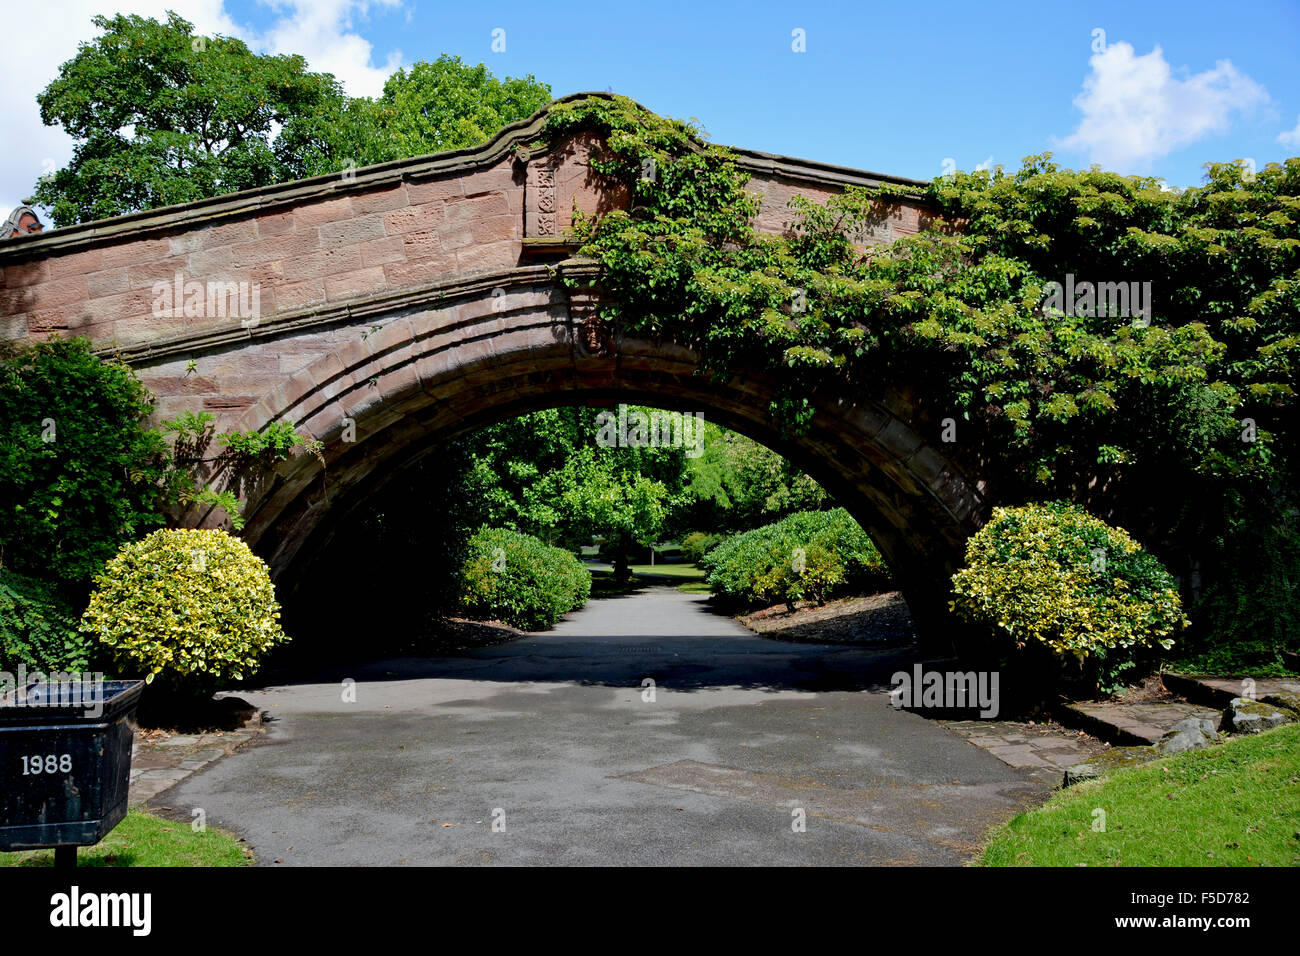 The Iconic Port Sunlight Dell Bridge and on the other side - The LyceumStock Photo